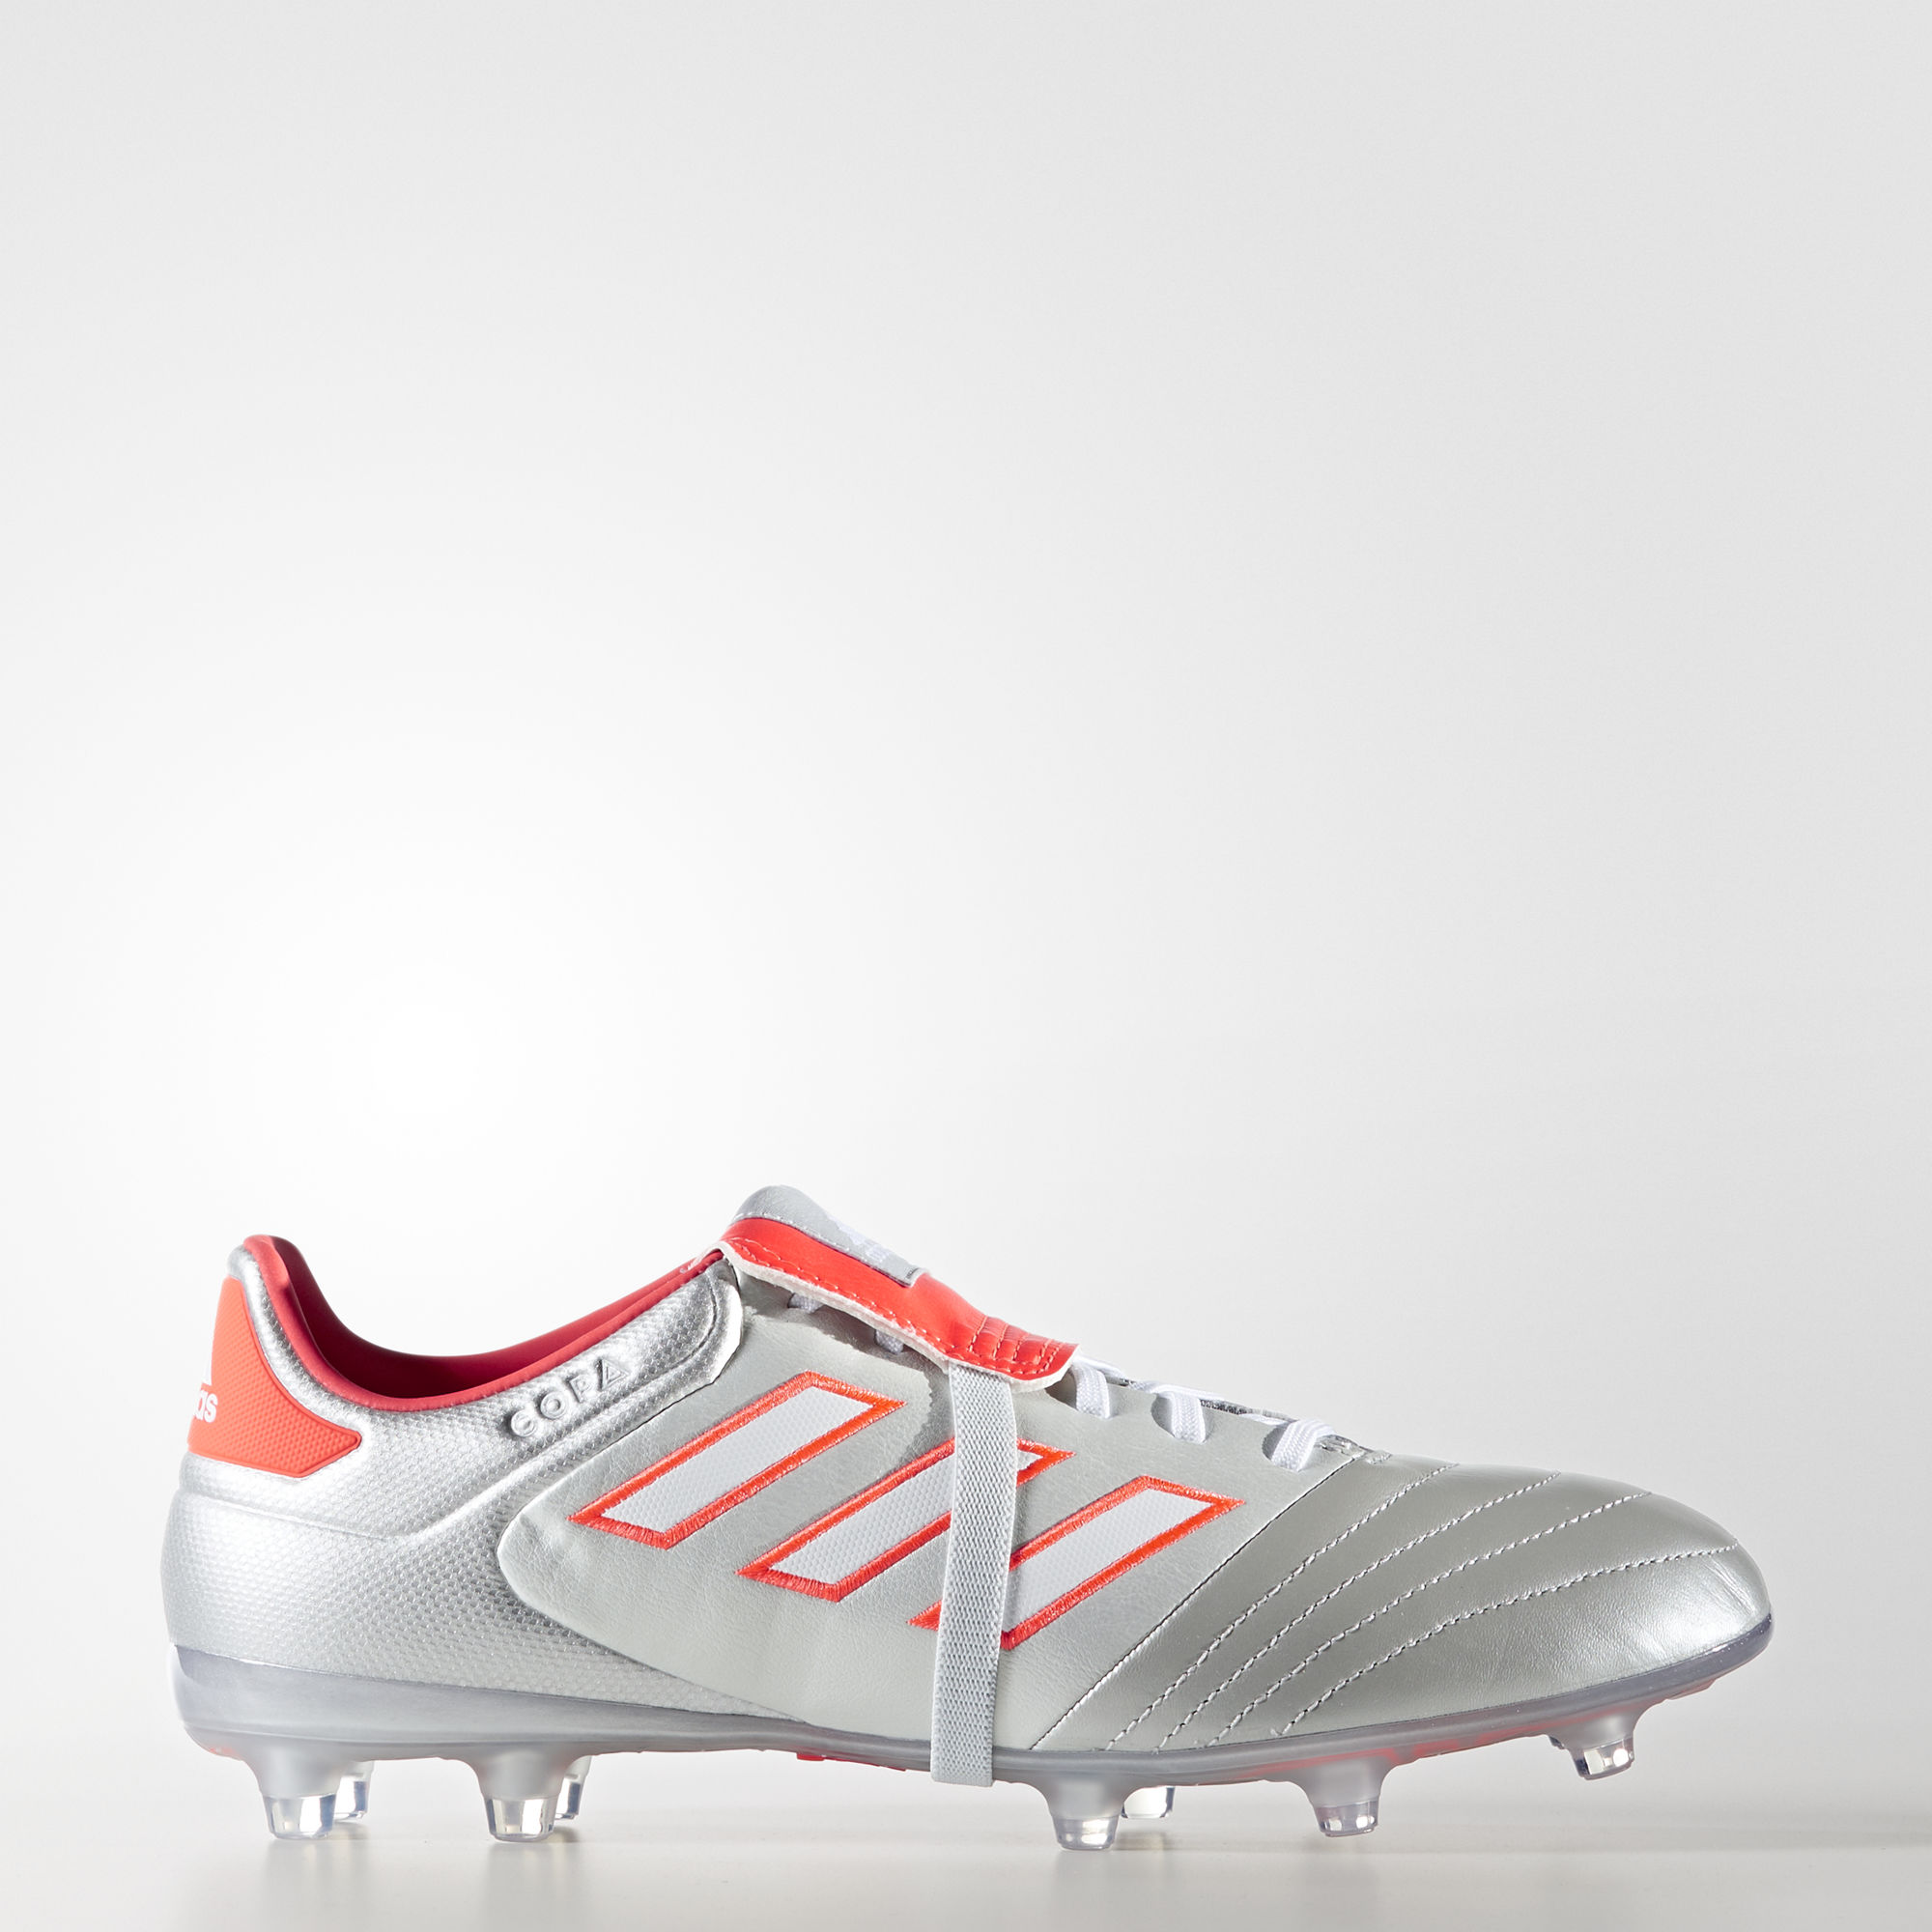 official photos 01a21 e56f8 Adidas Copa Gloro 17.2 FG - Silver Metalic   Footwear White   Solar Red